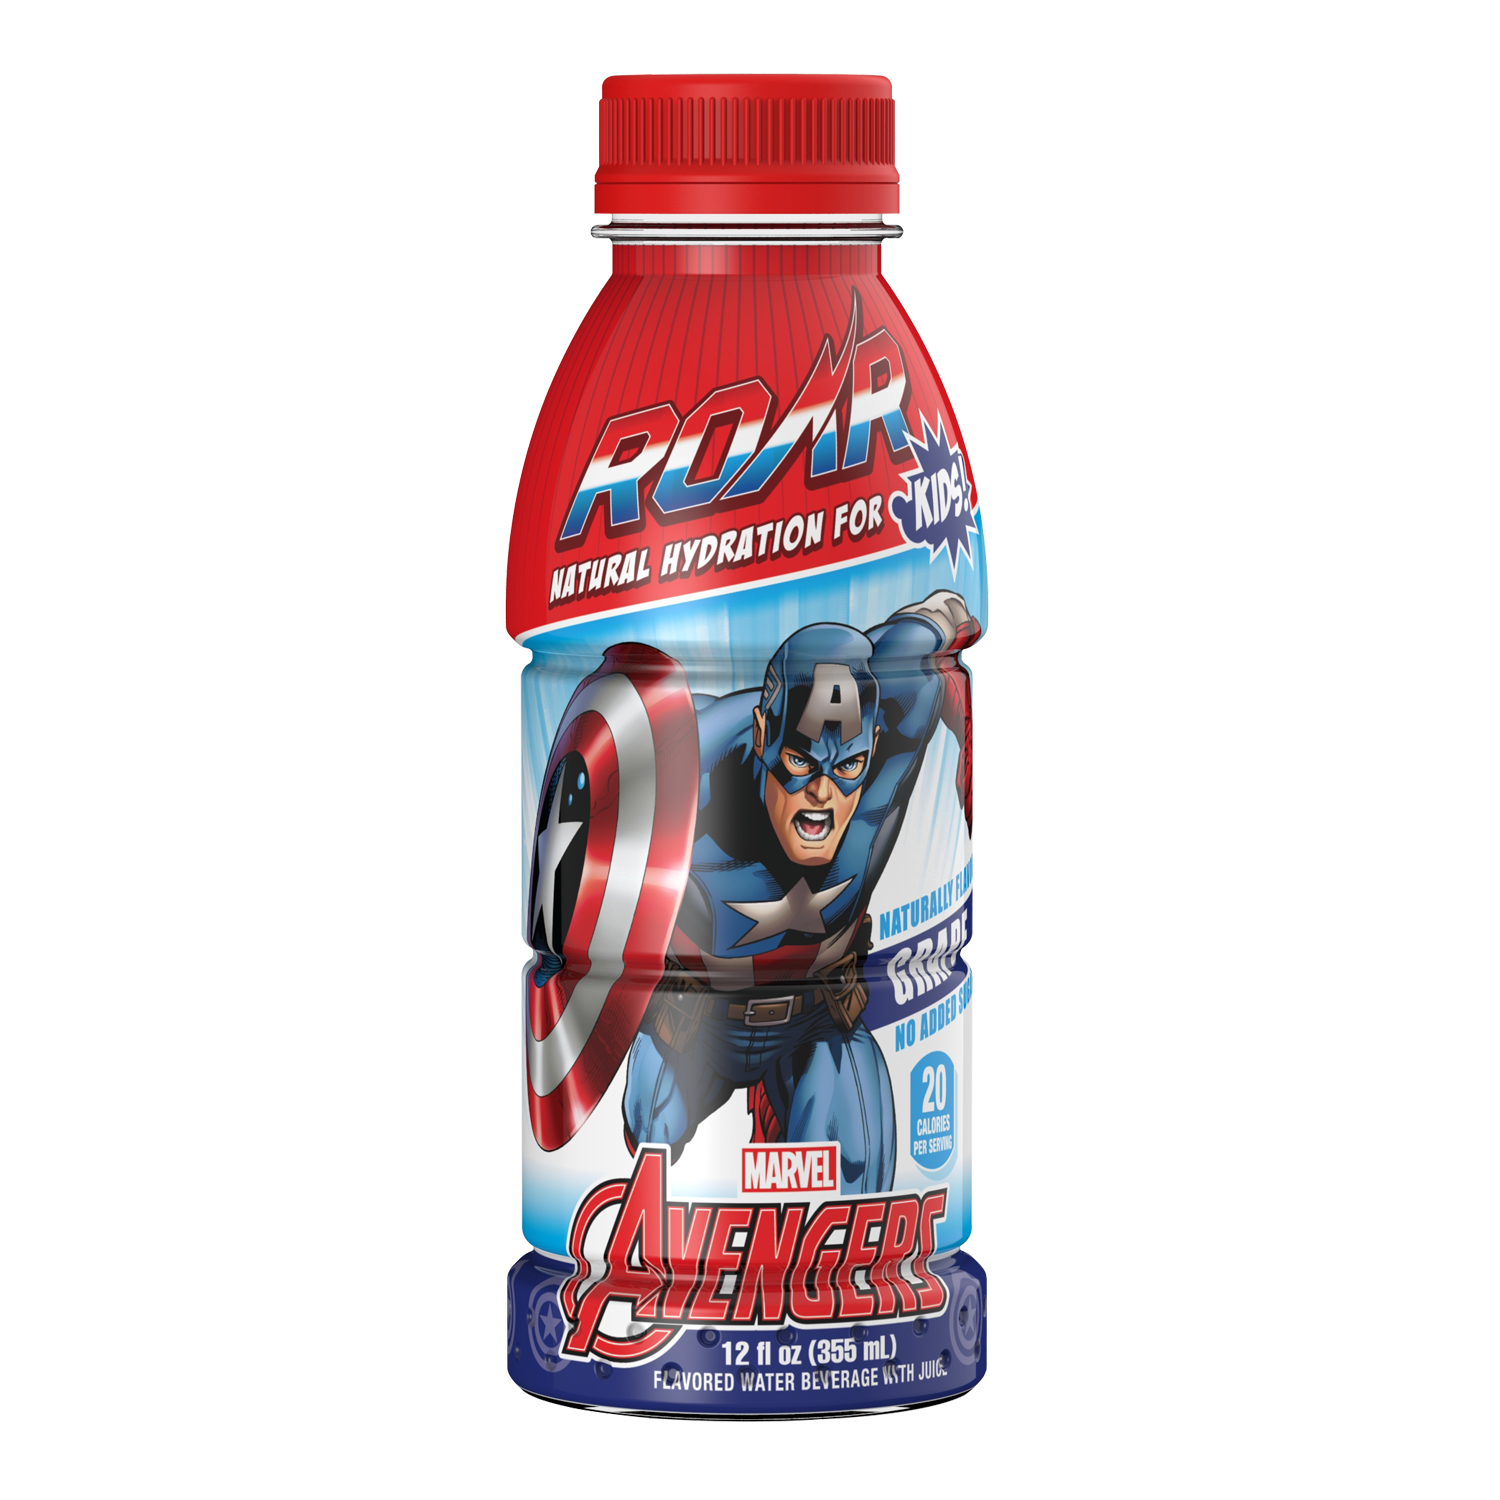 ROAR Captain America Kids Juice, Grape, 12 Fl Oz, 12 Ct